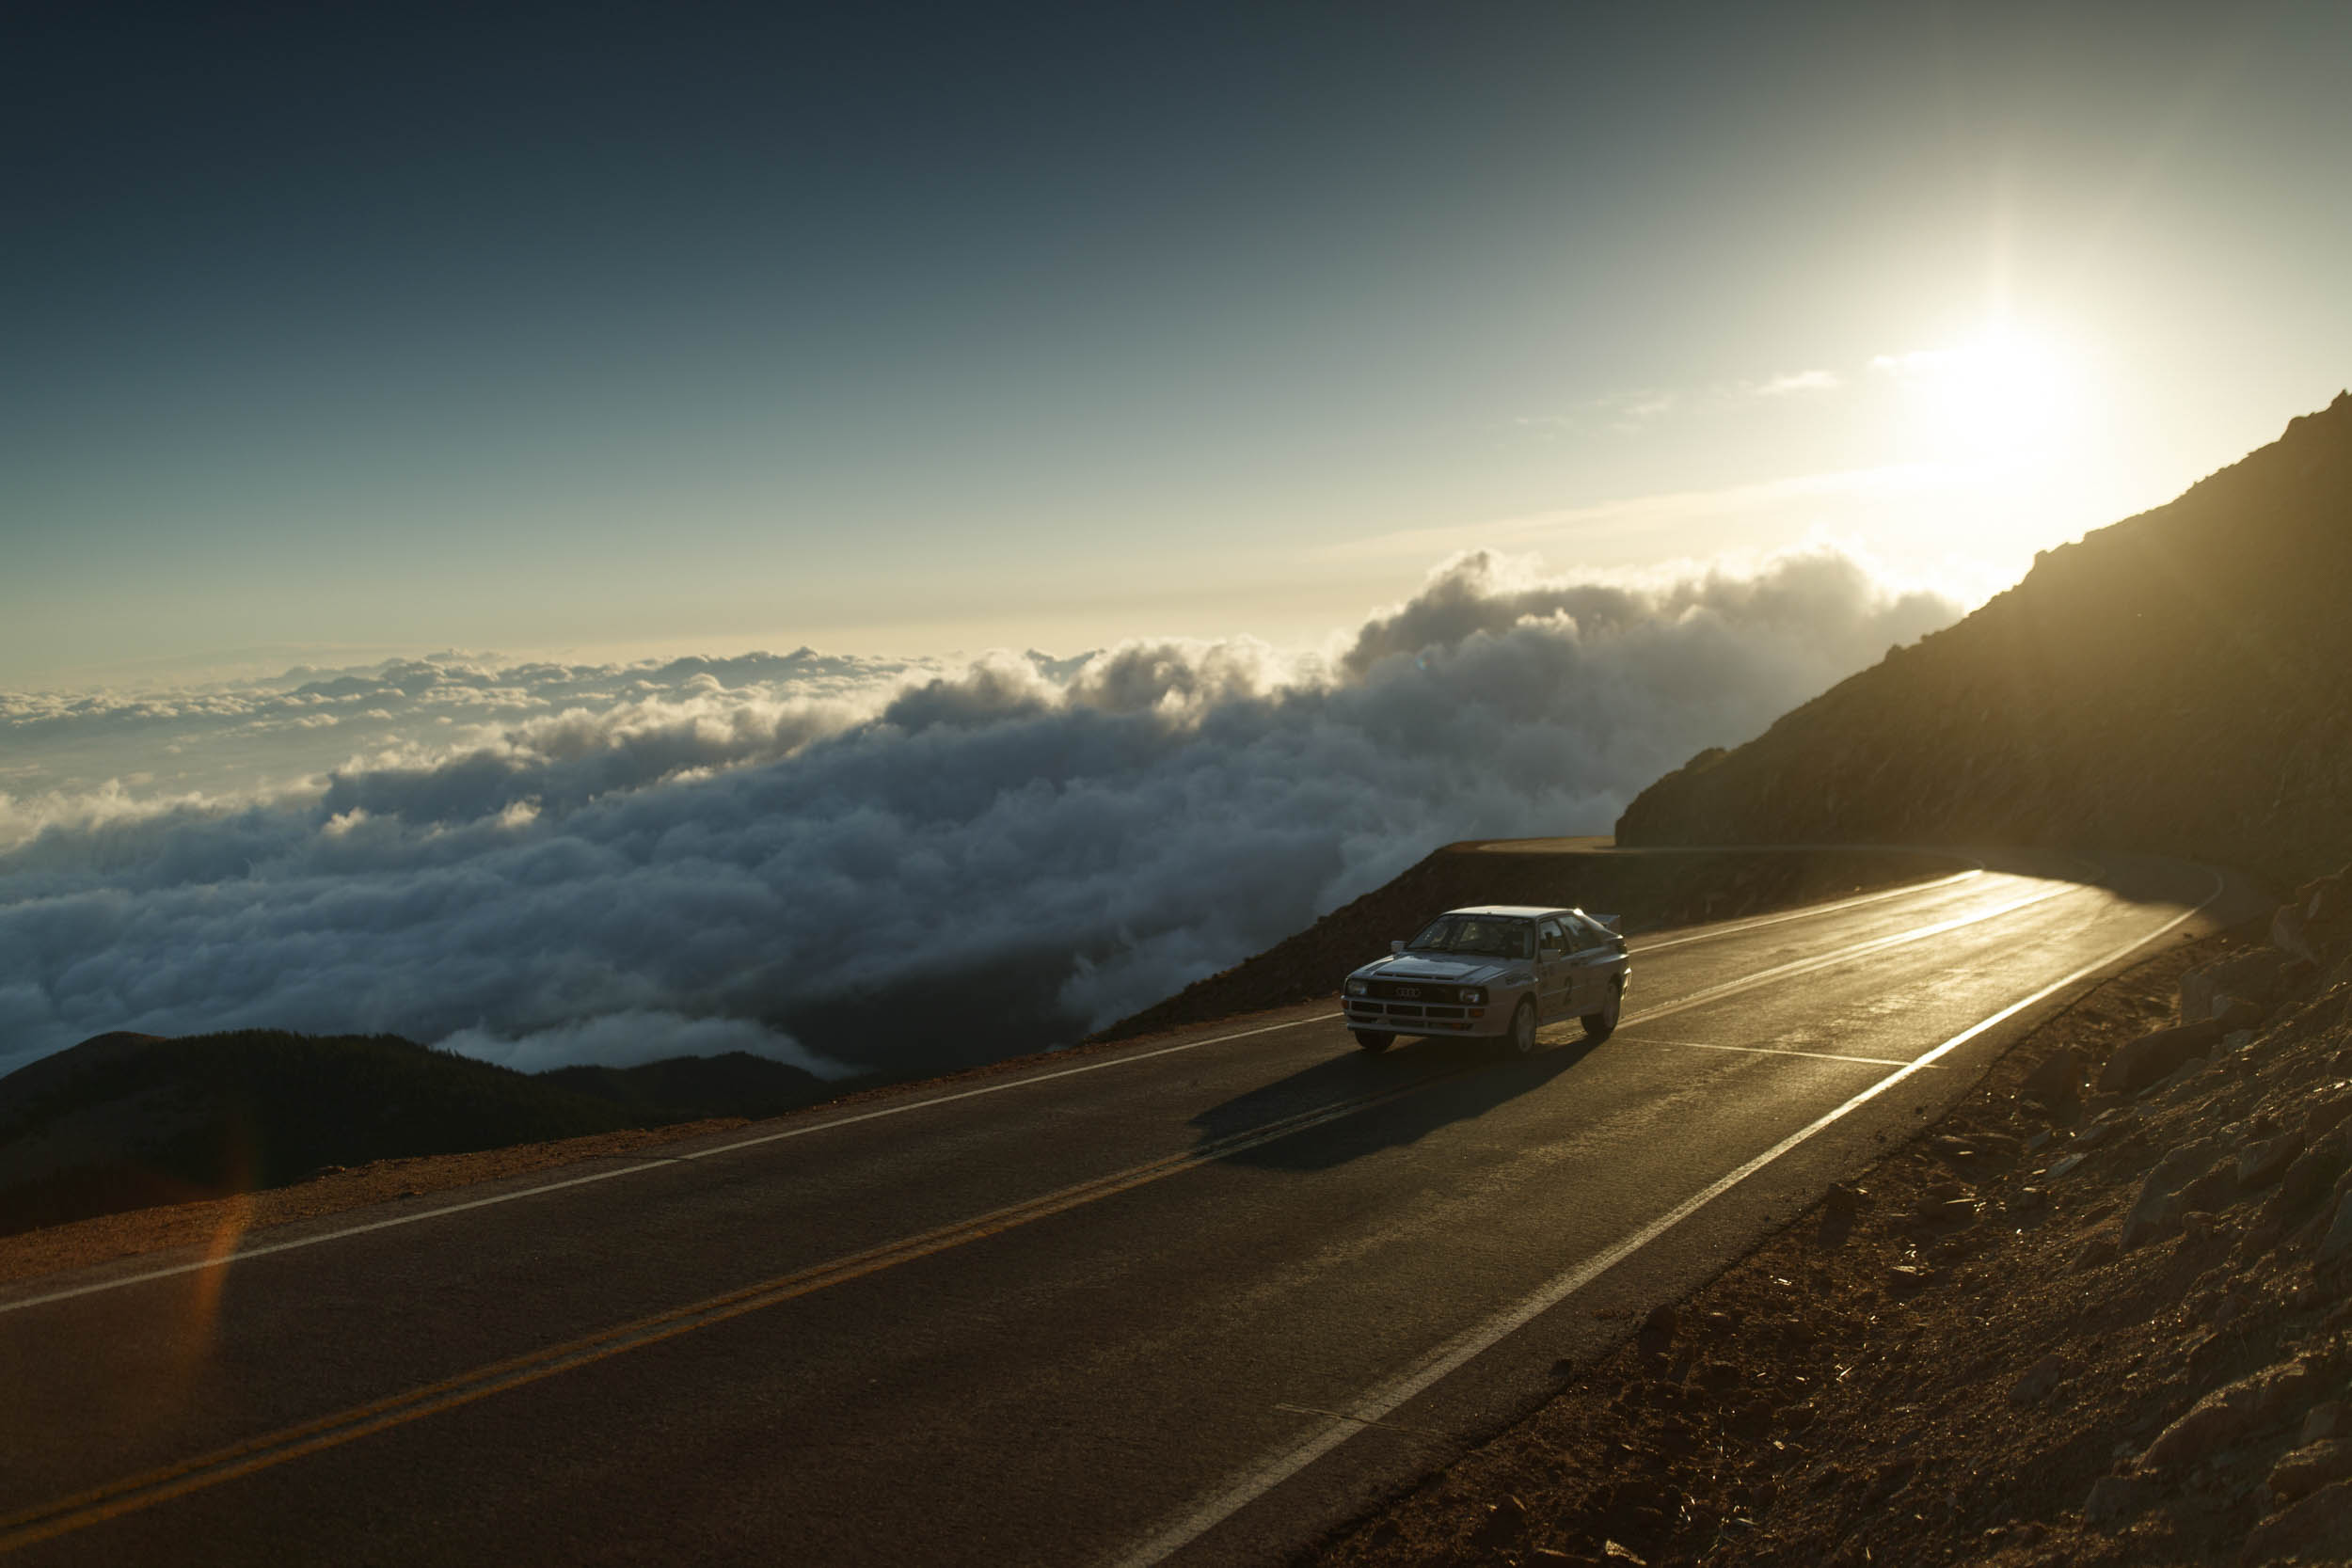 driving above the clouds